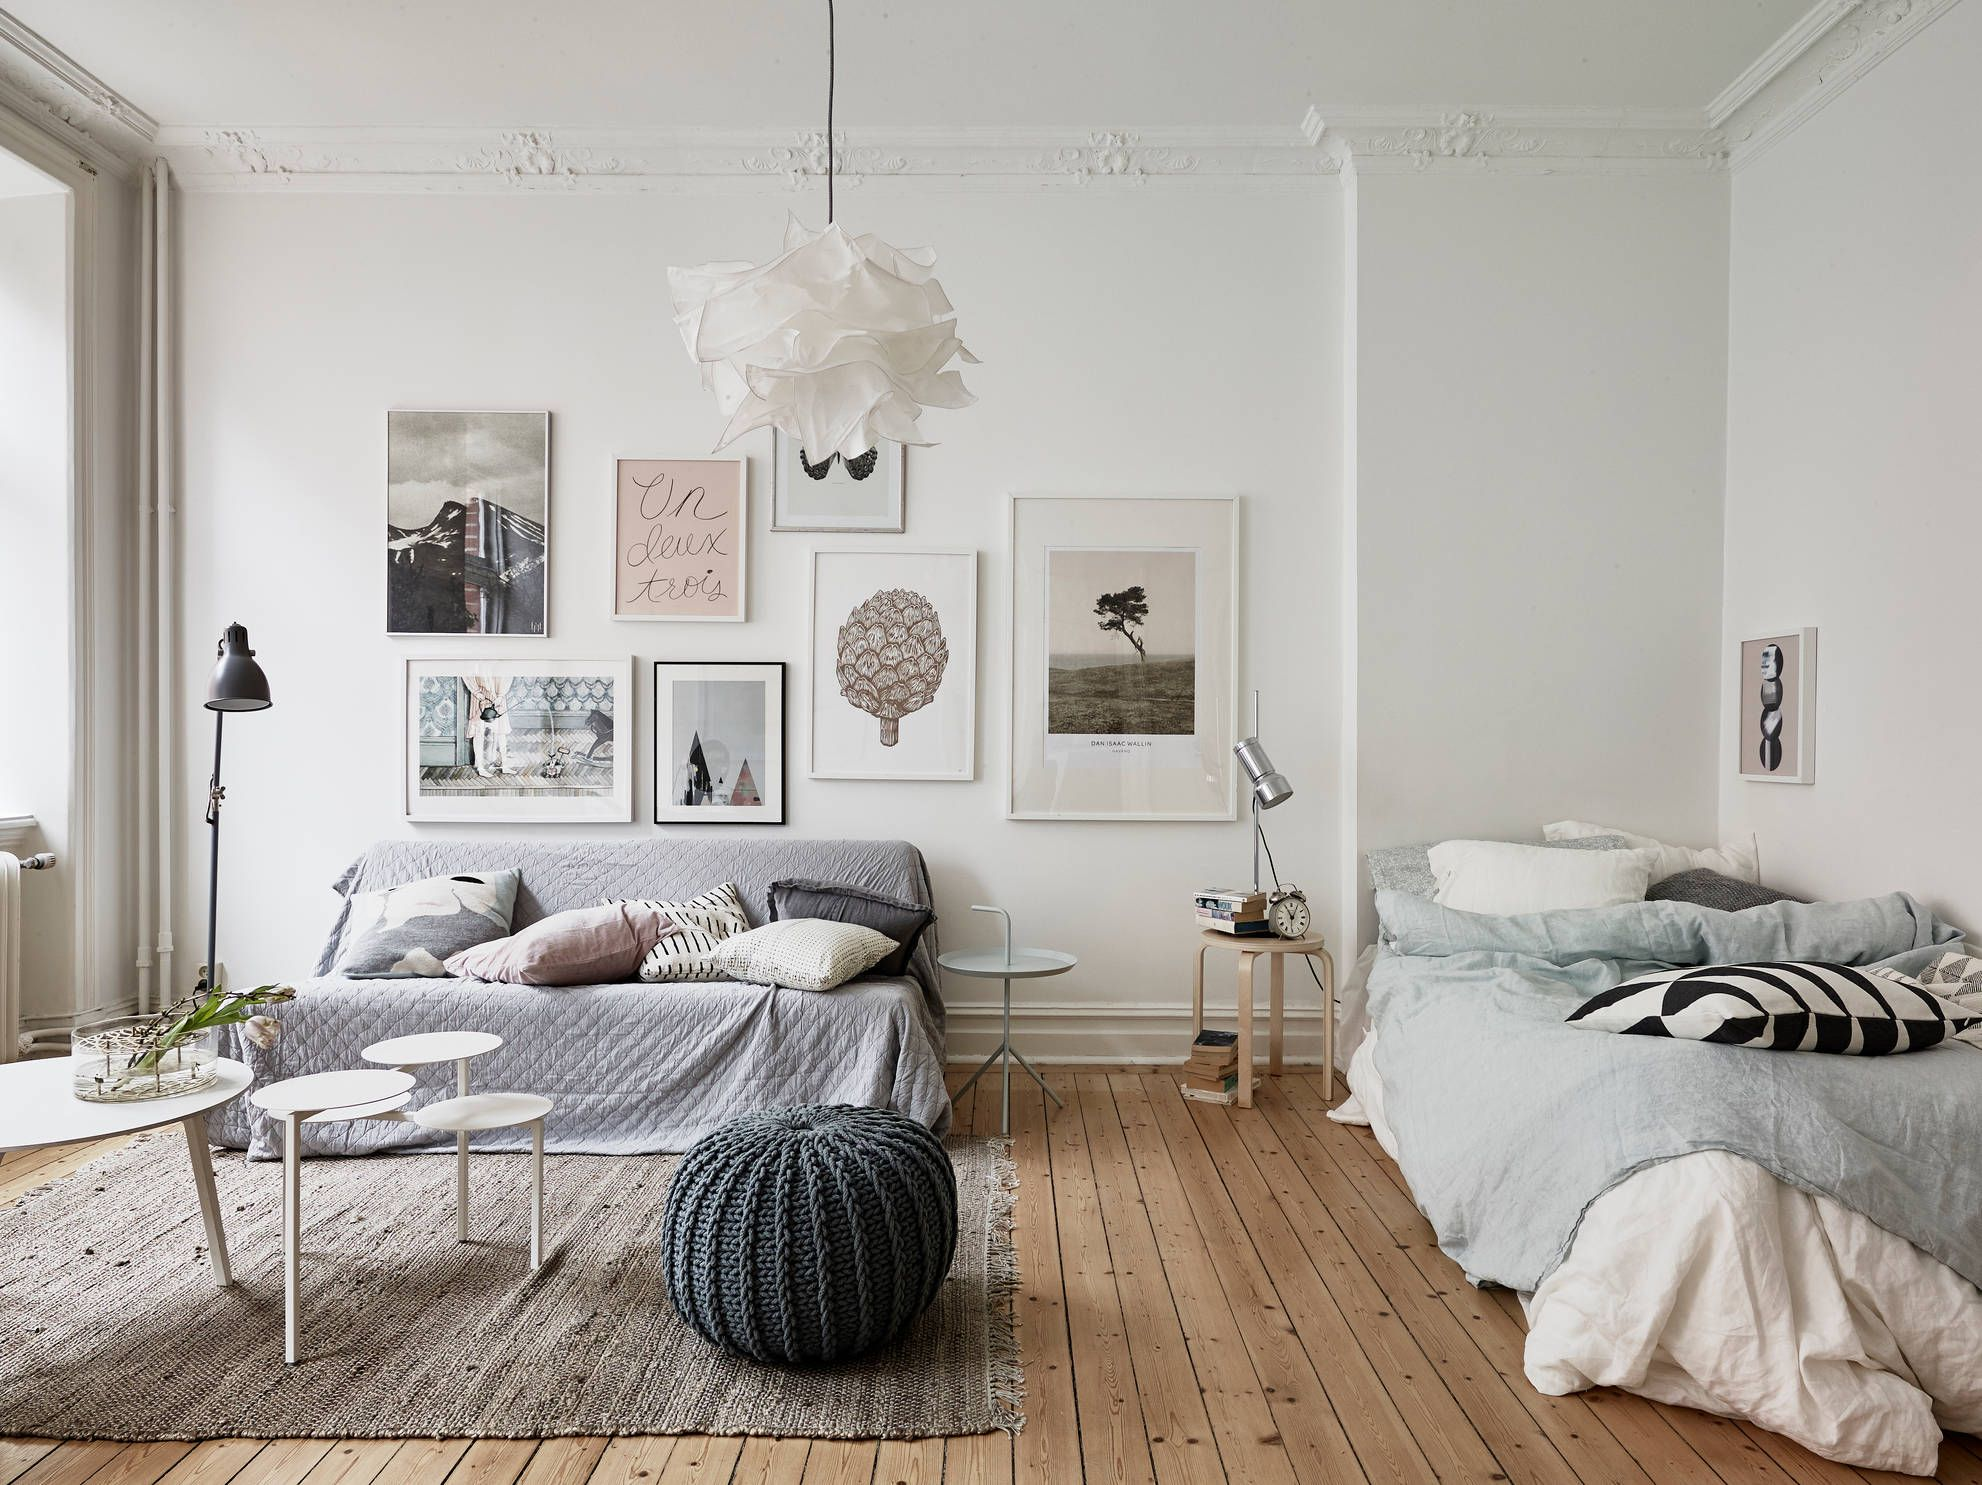 Home with muted spring colors | Home | Pinterest | Studio apartment ...